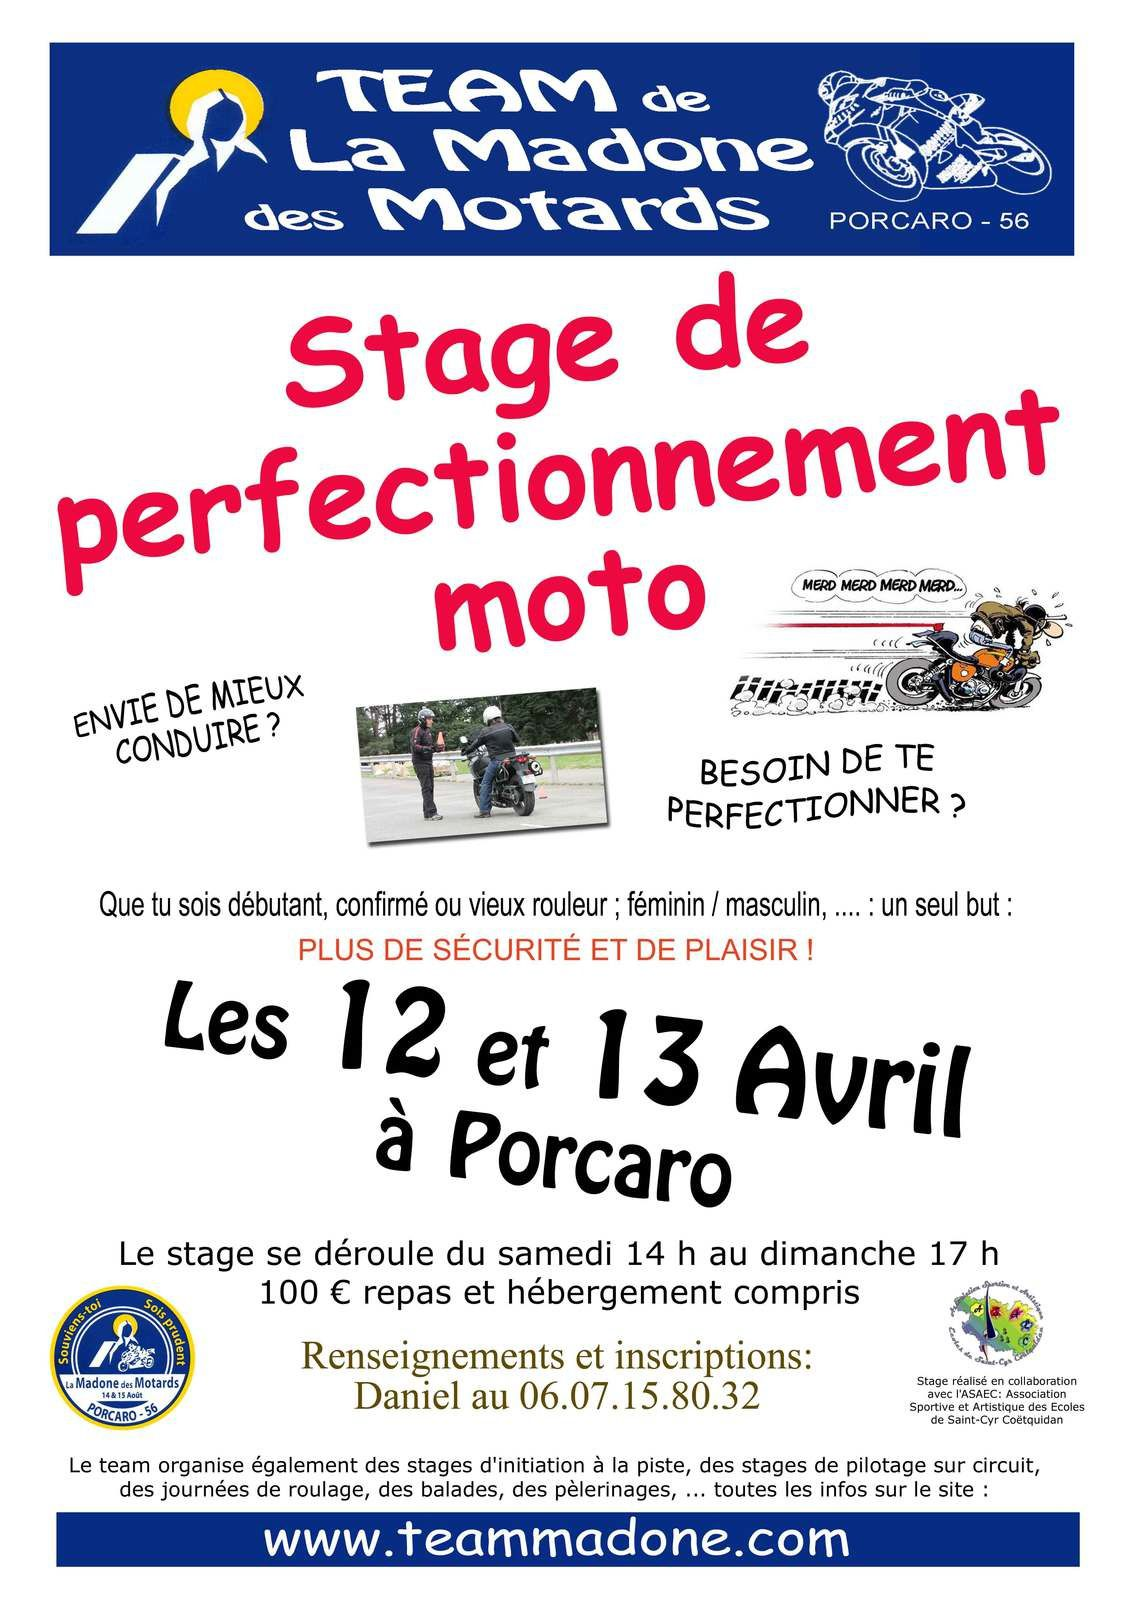 Stages initiation piste et perfectionnement moto!